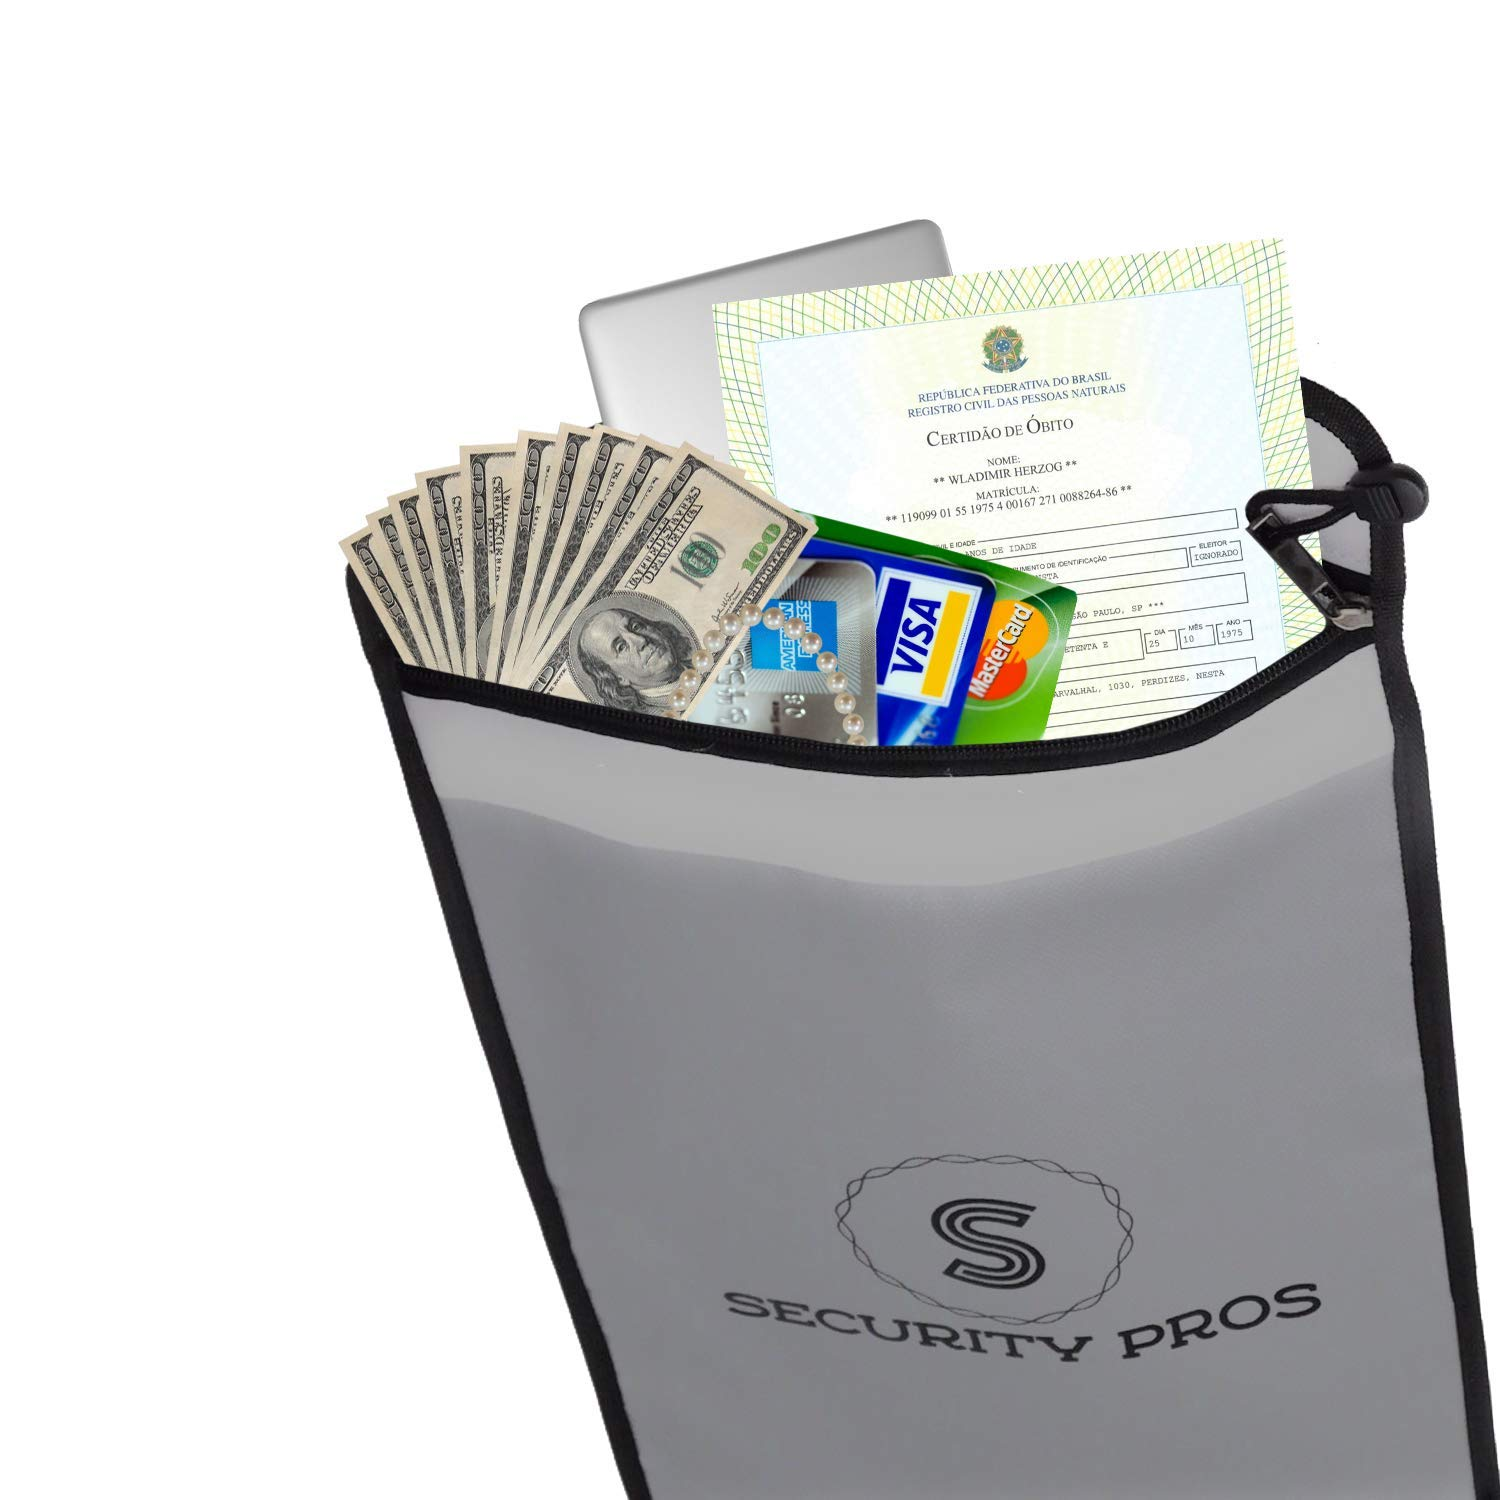 Security Pros Cash Envelope Document Bag 15x11 Non-Itchy Silicone Coated Fire & Water Resistant Bag, Blast Proof for Lipo Batteries, Safe Charging and Storage, Protect Your Money, Documents, Jewelry